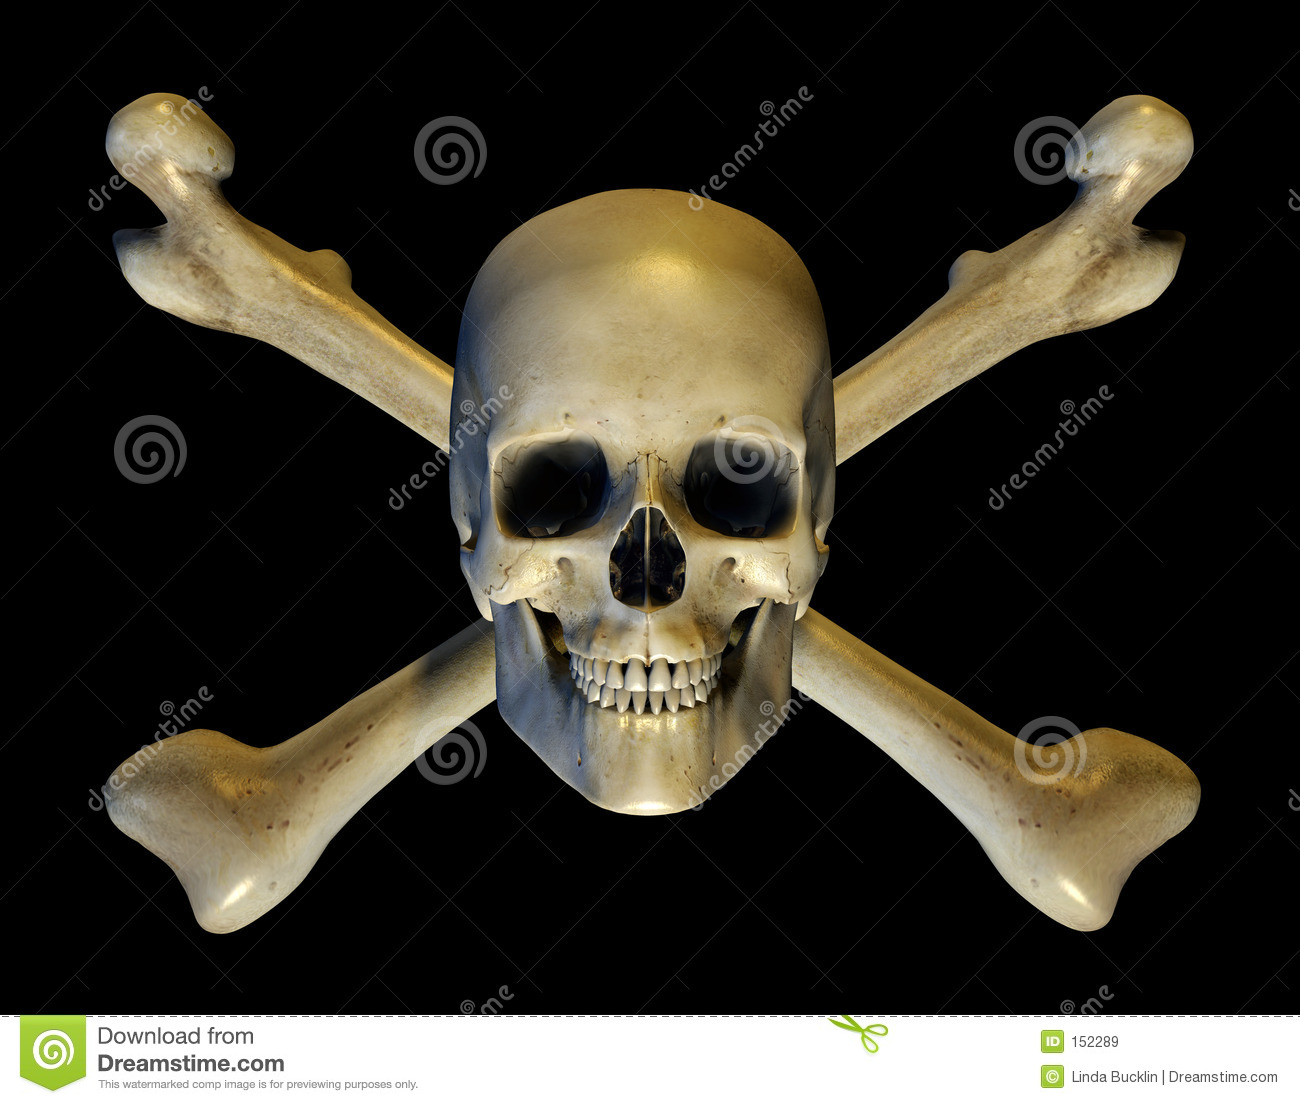 Skull and Crossbones - includes clipping path